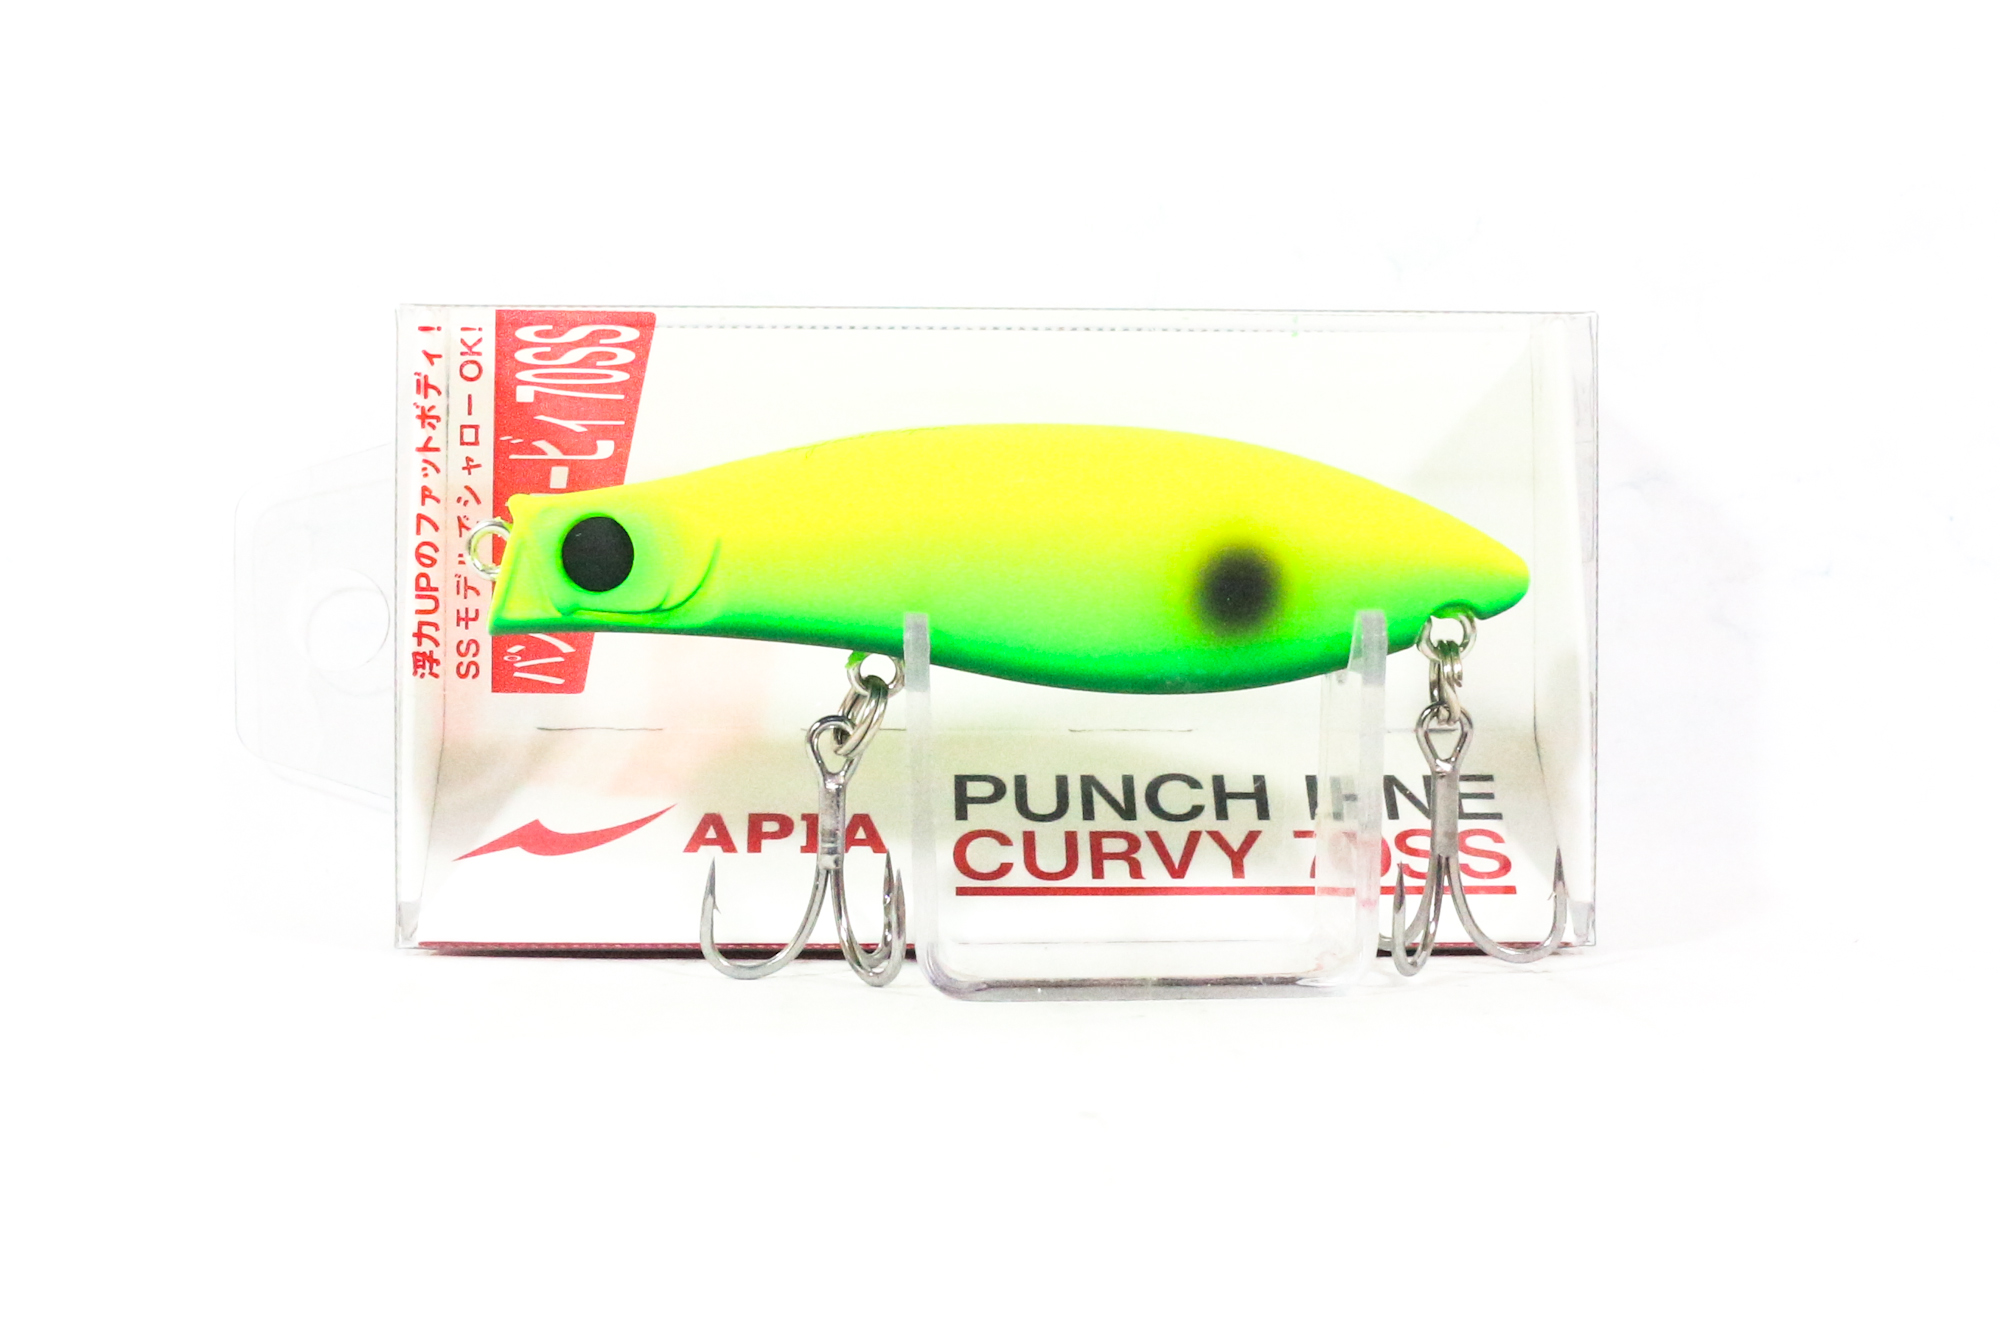 Apia Punch Line Curvy 70SS Pencil Sinking Lure 06 (0054)